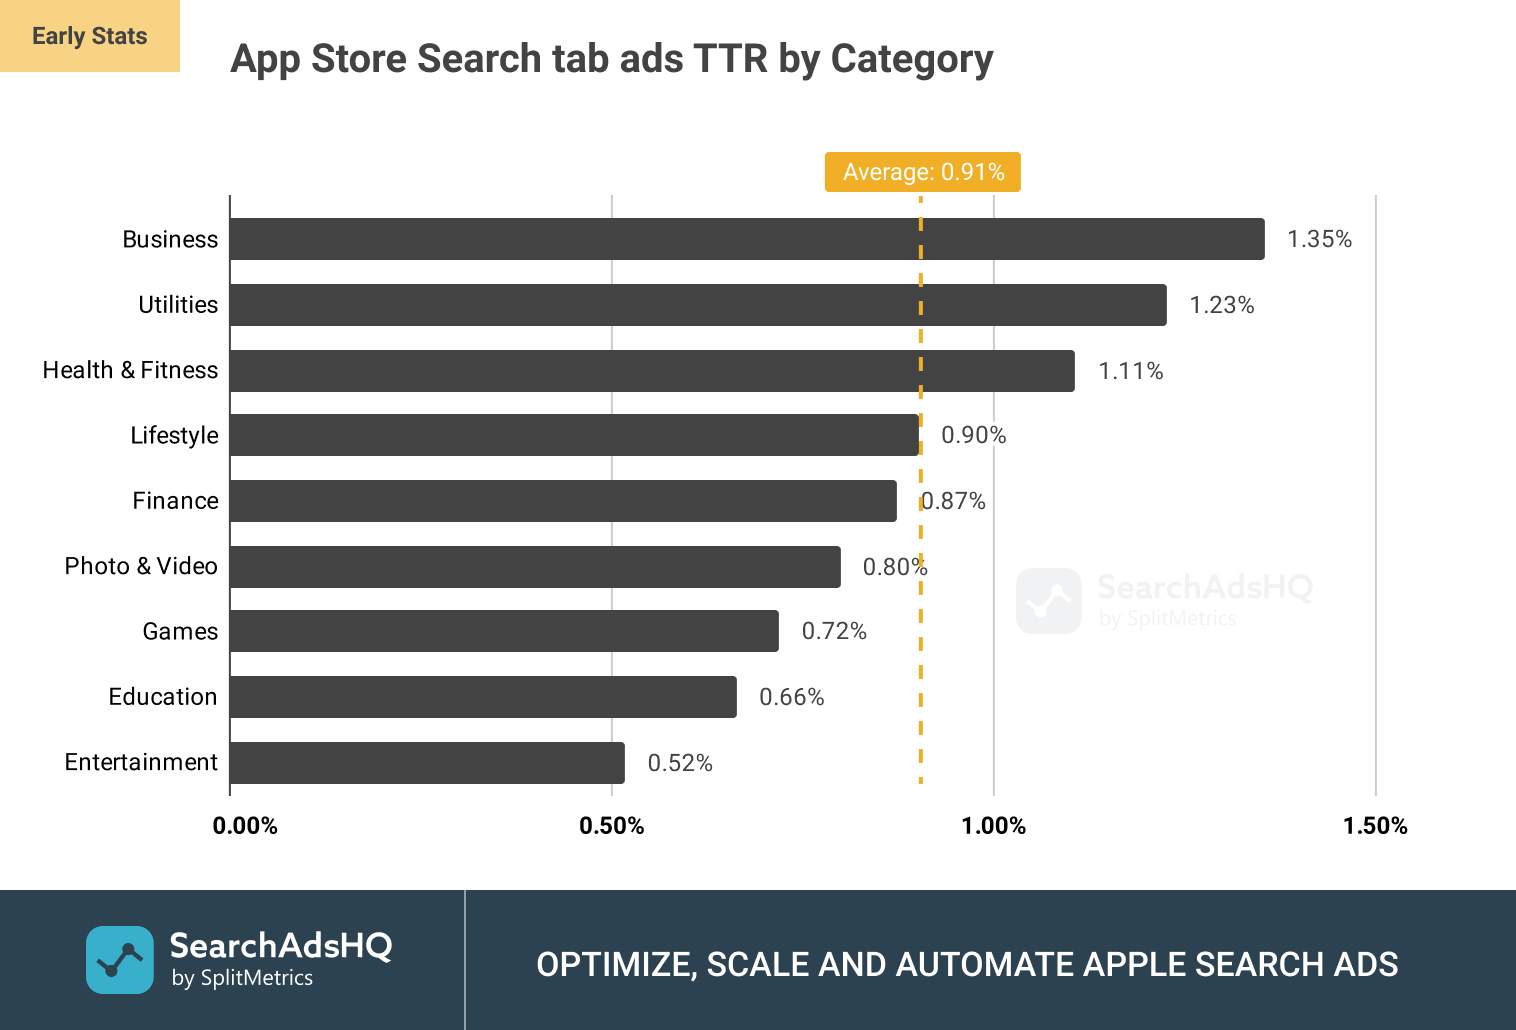 App Store Search tab ads: Average TTR (Tap-Through Rate) by Category